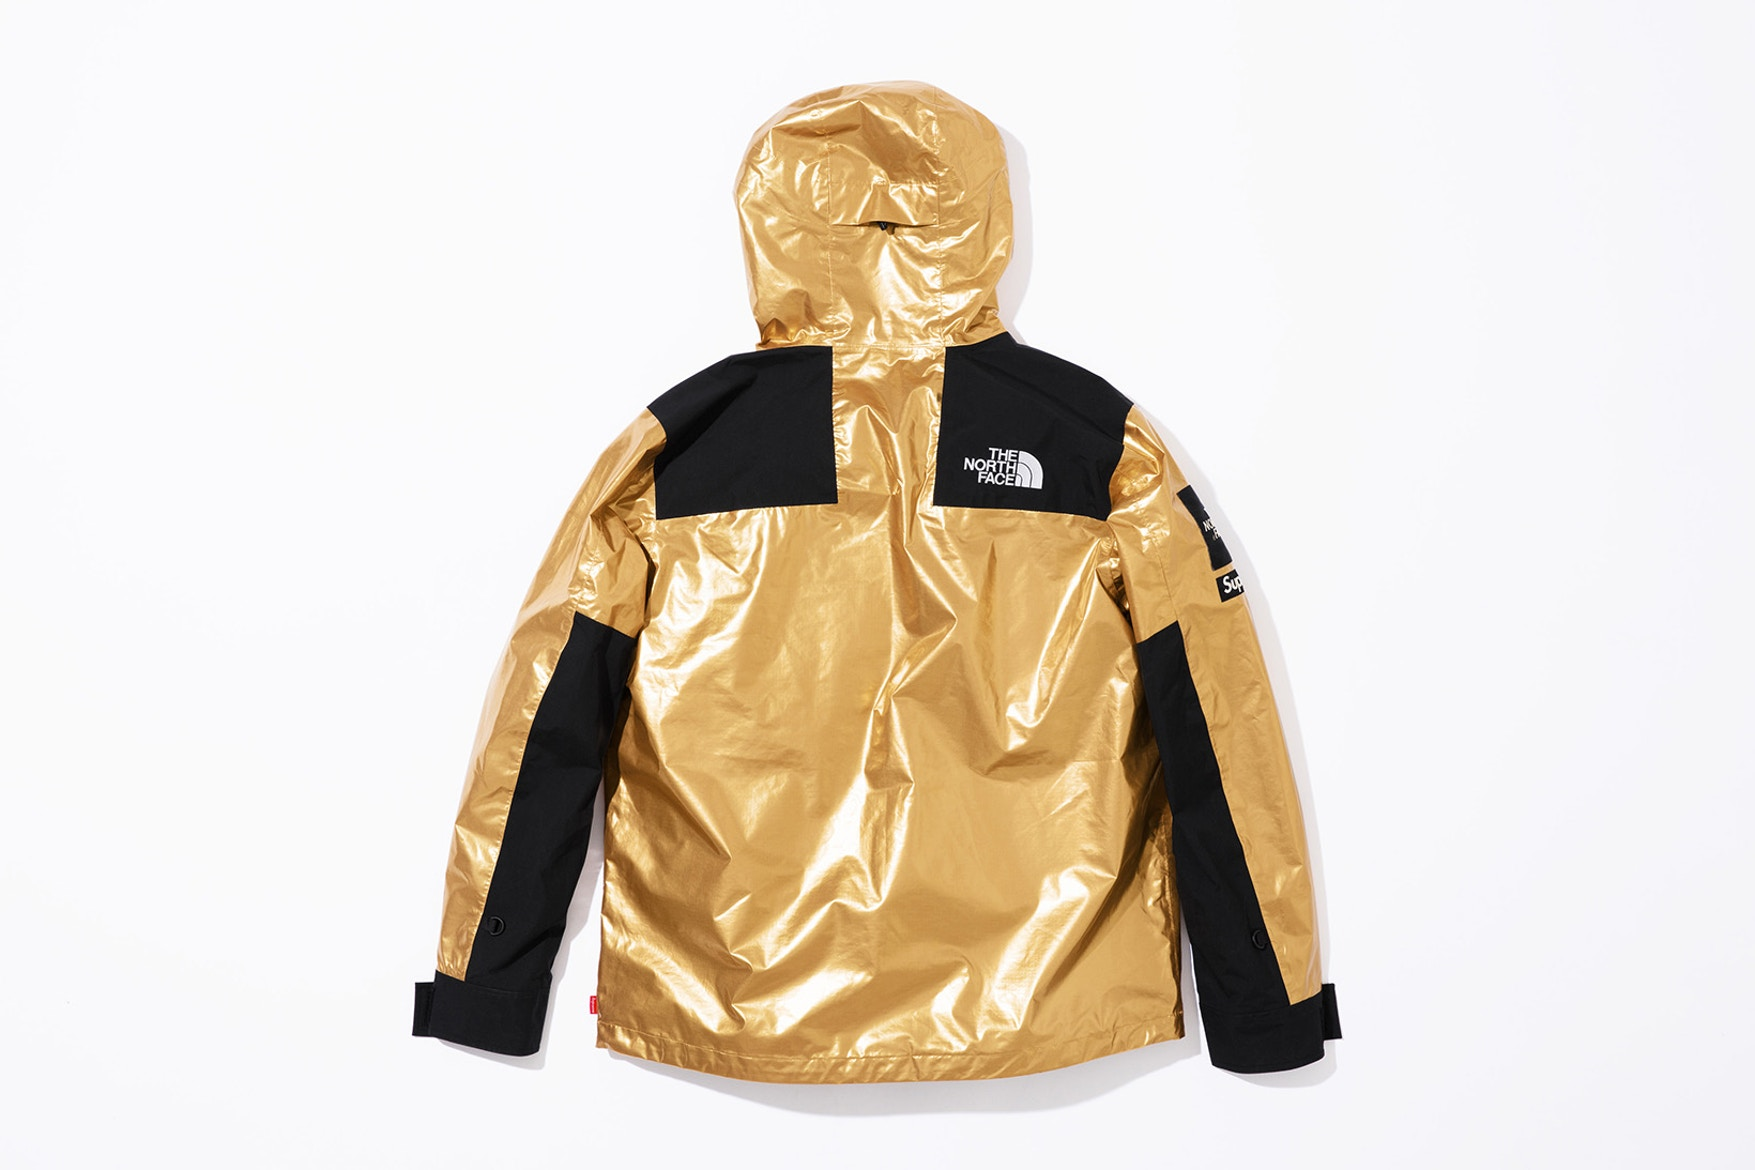 The Cut   REDDS   Supreme x The North Face SS18